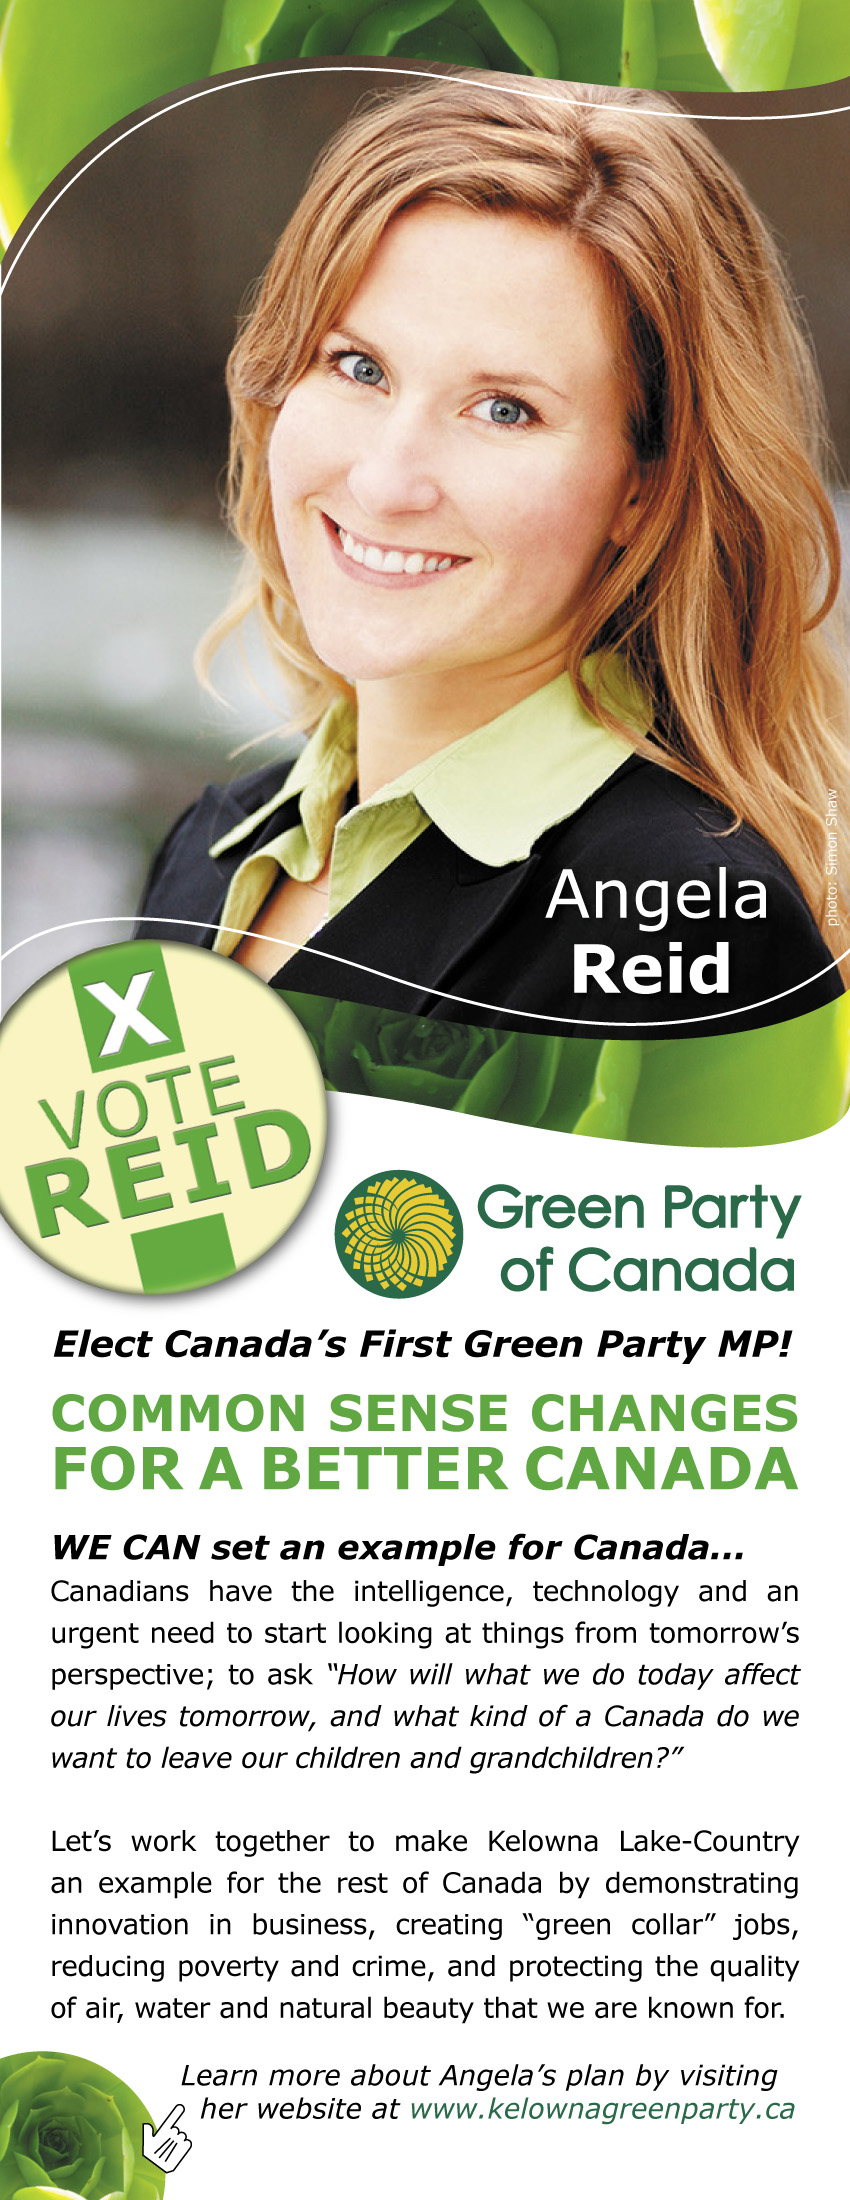 GreenParty_InfoCard.jpg